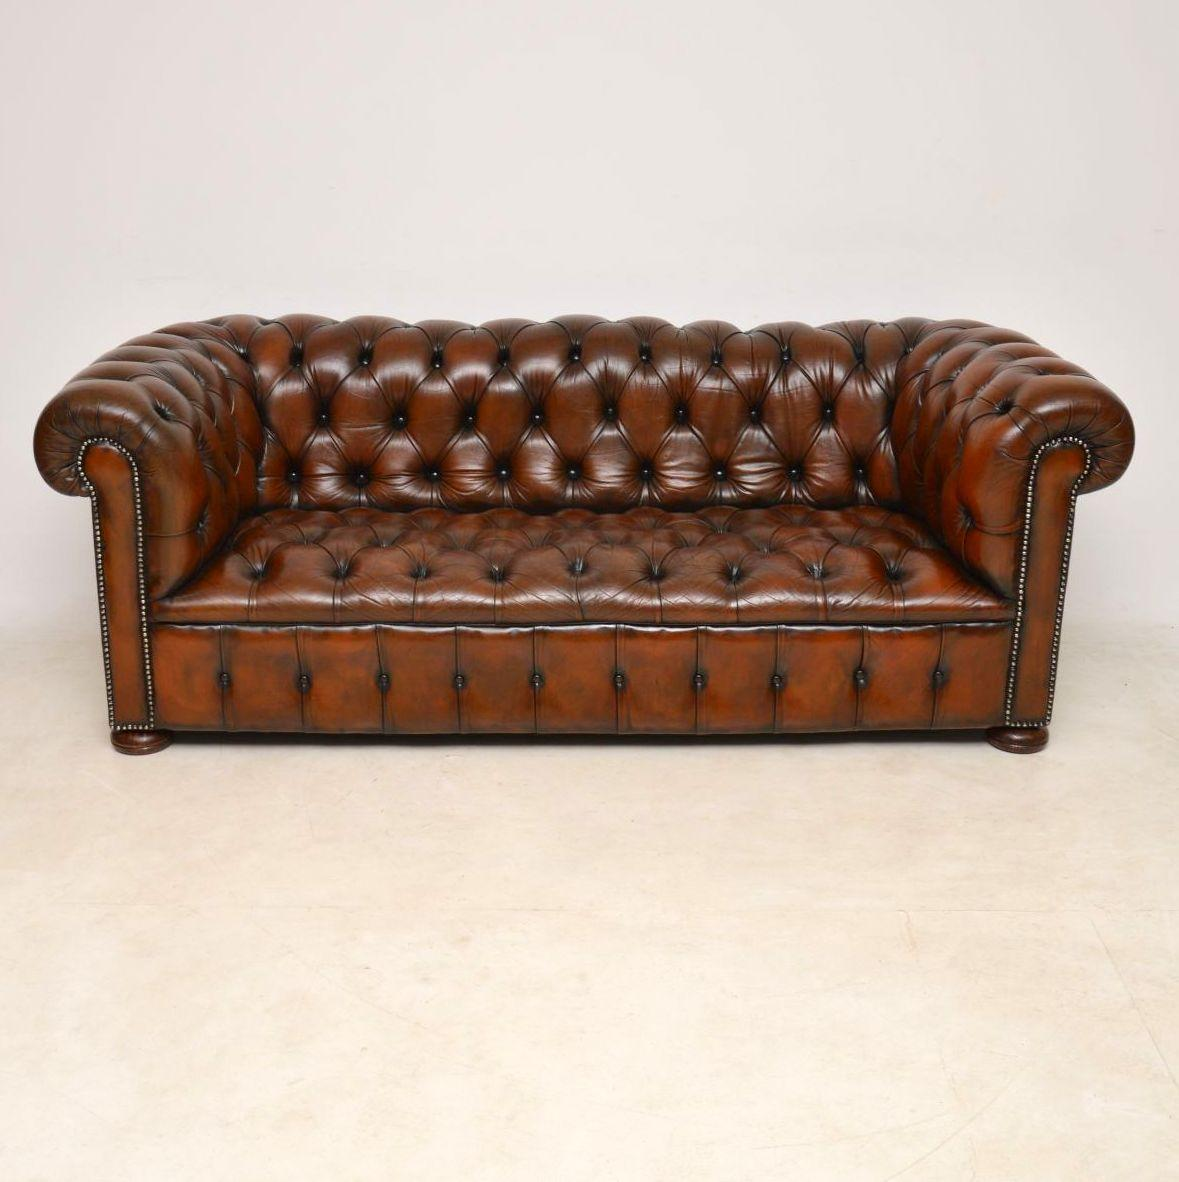 Antique Deep Buttoned Leather Chesterfield Three Seat Sofa With A Wonderful  Color And Plenty Of